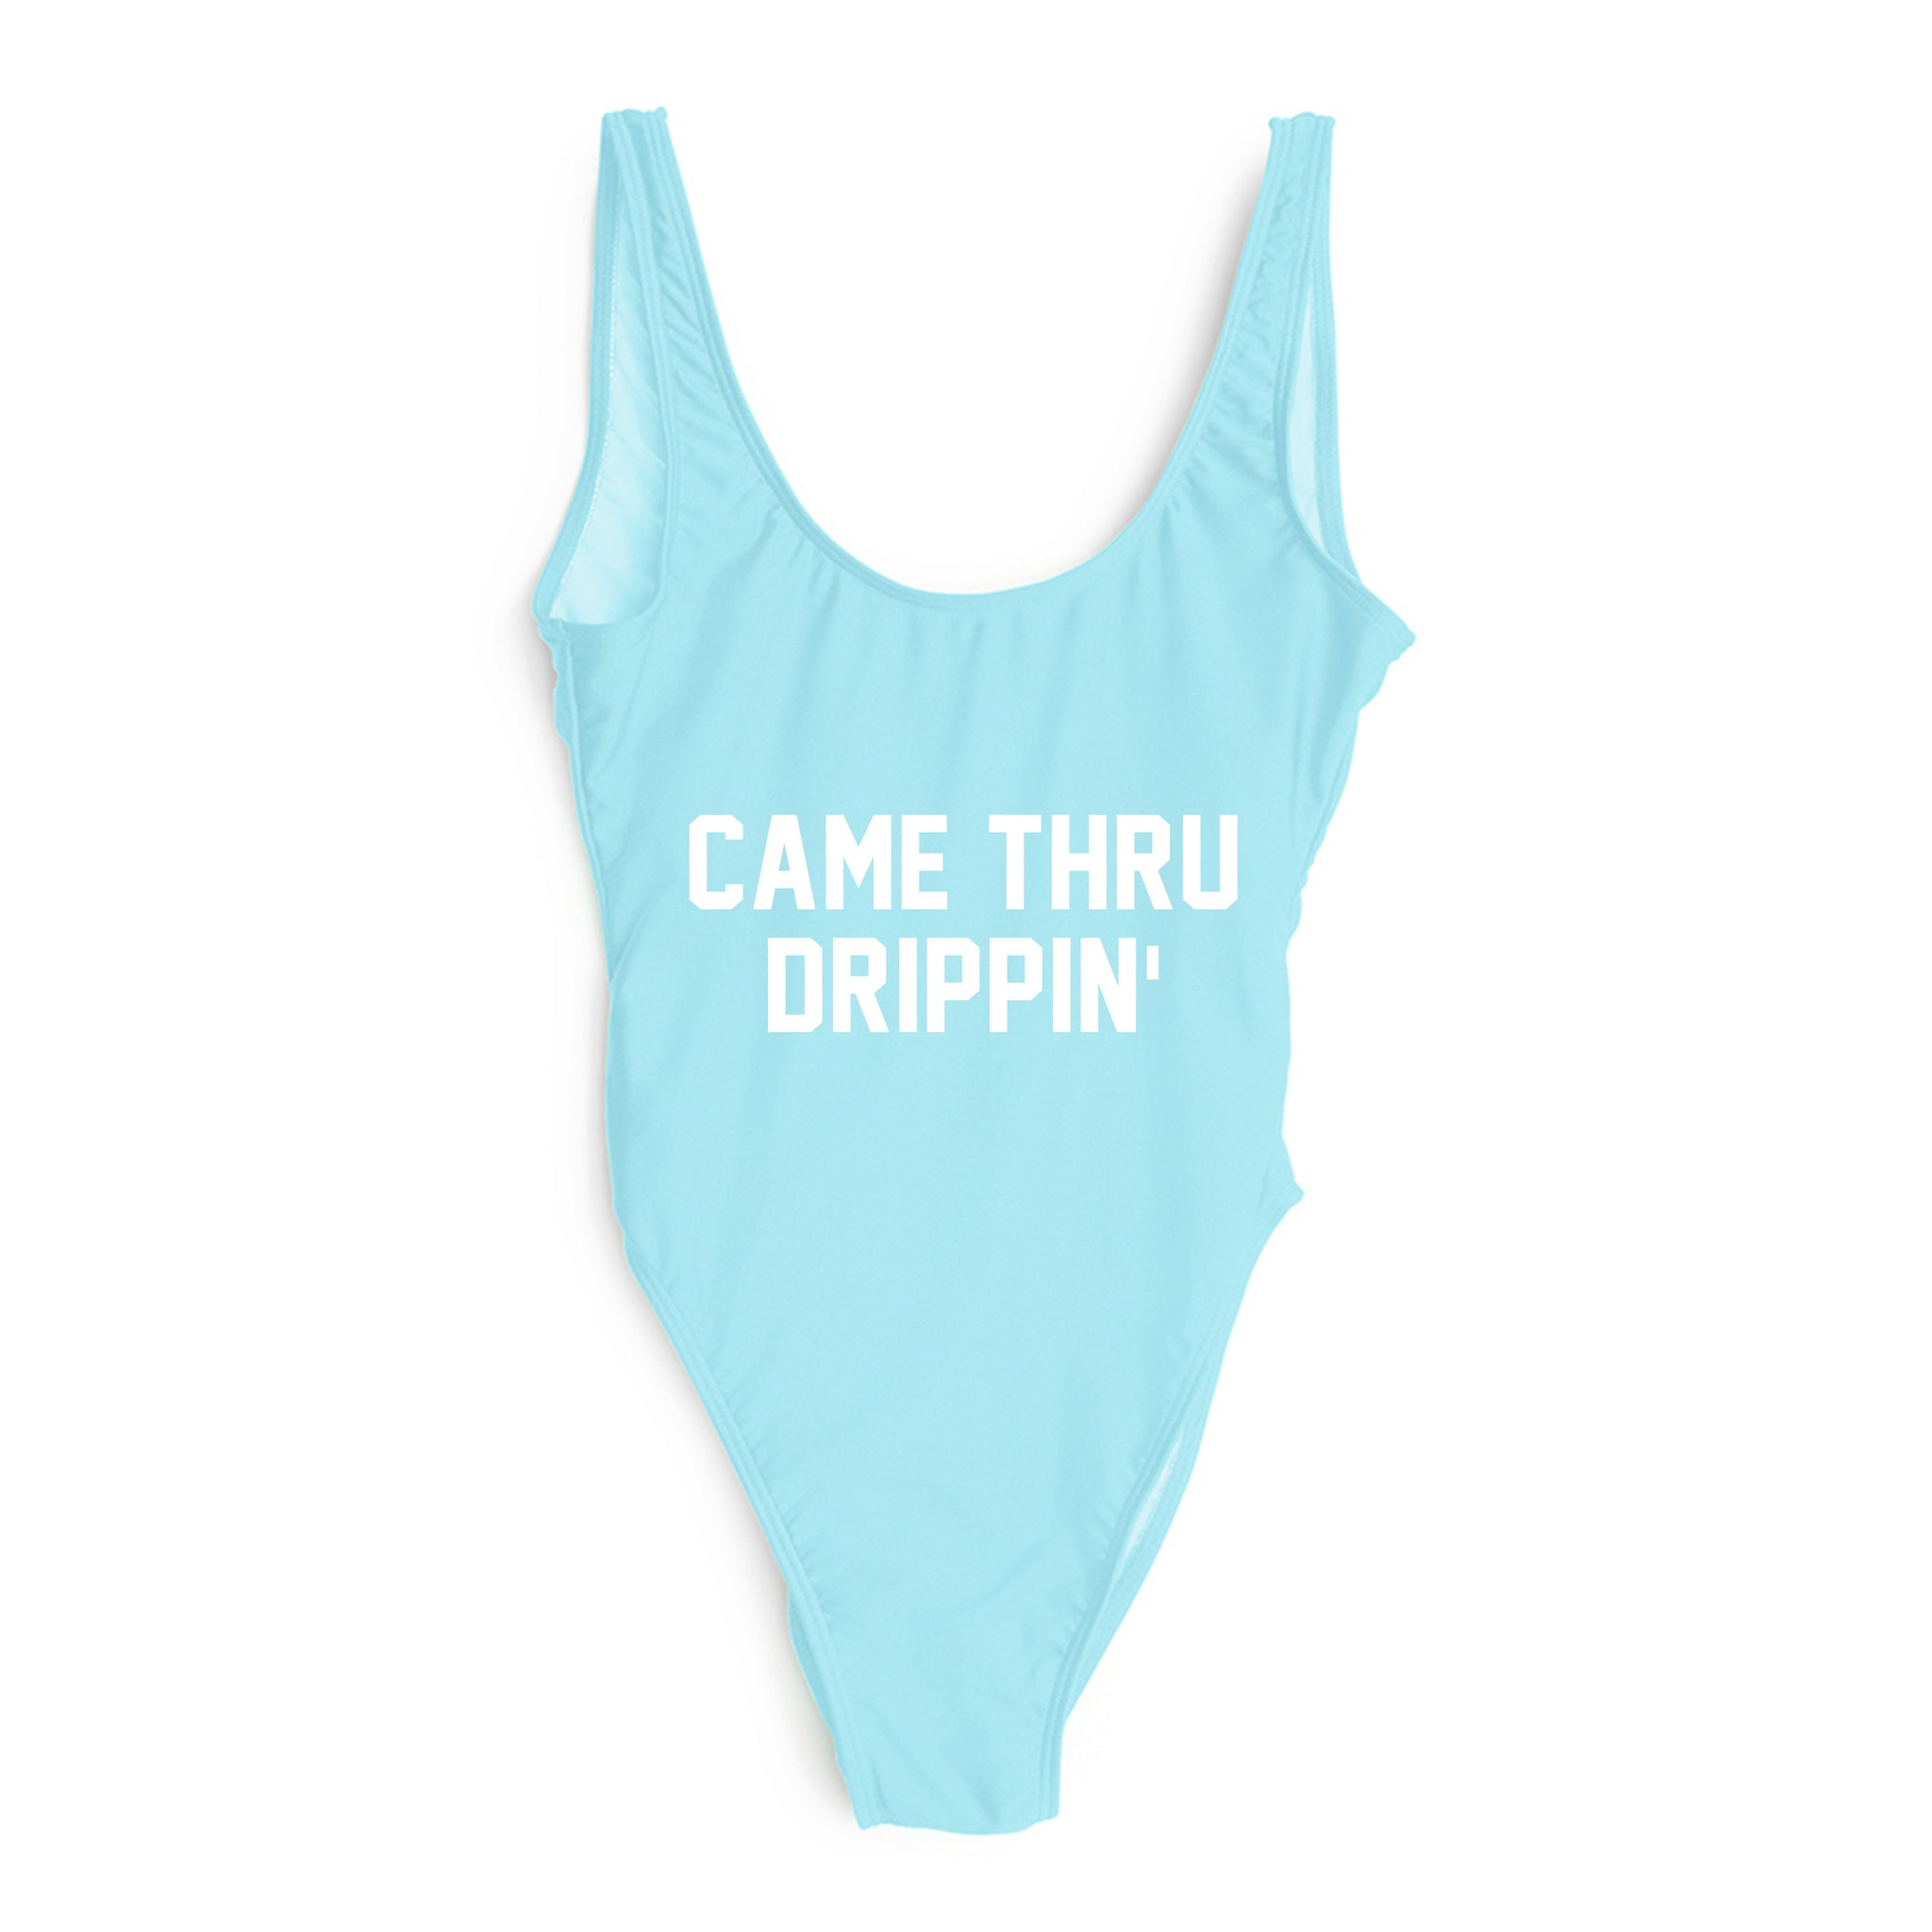 CAME THRU DRIPPIN' [SWIMSUIT]